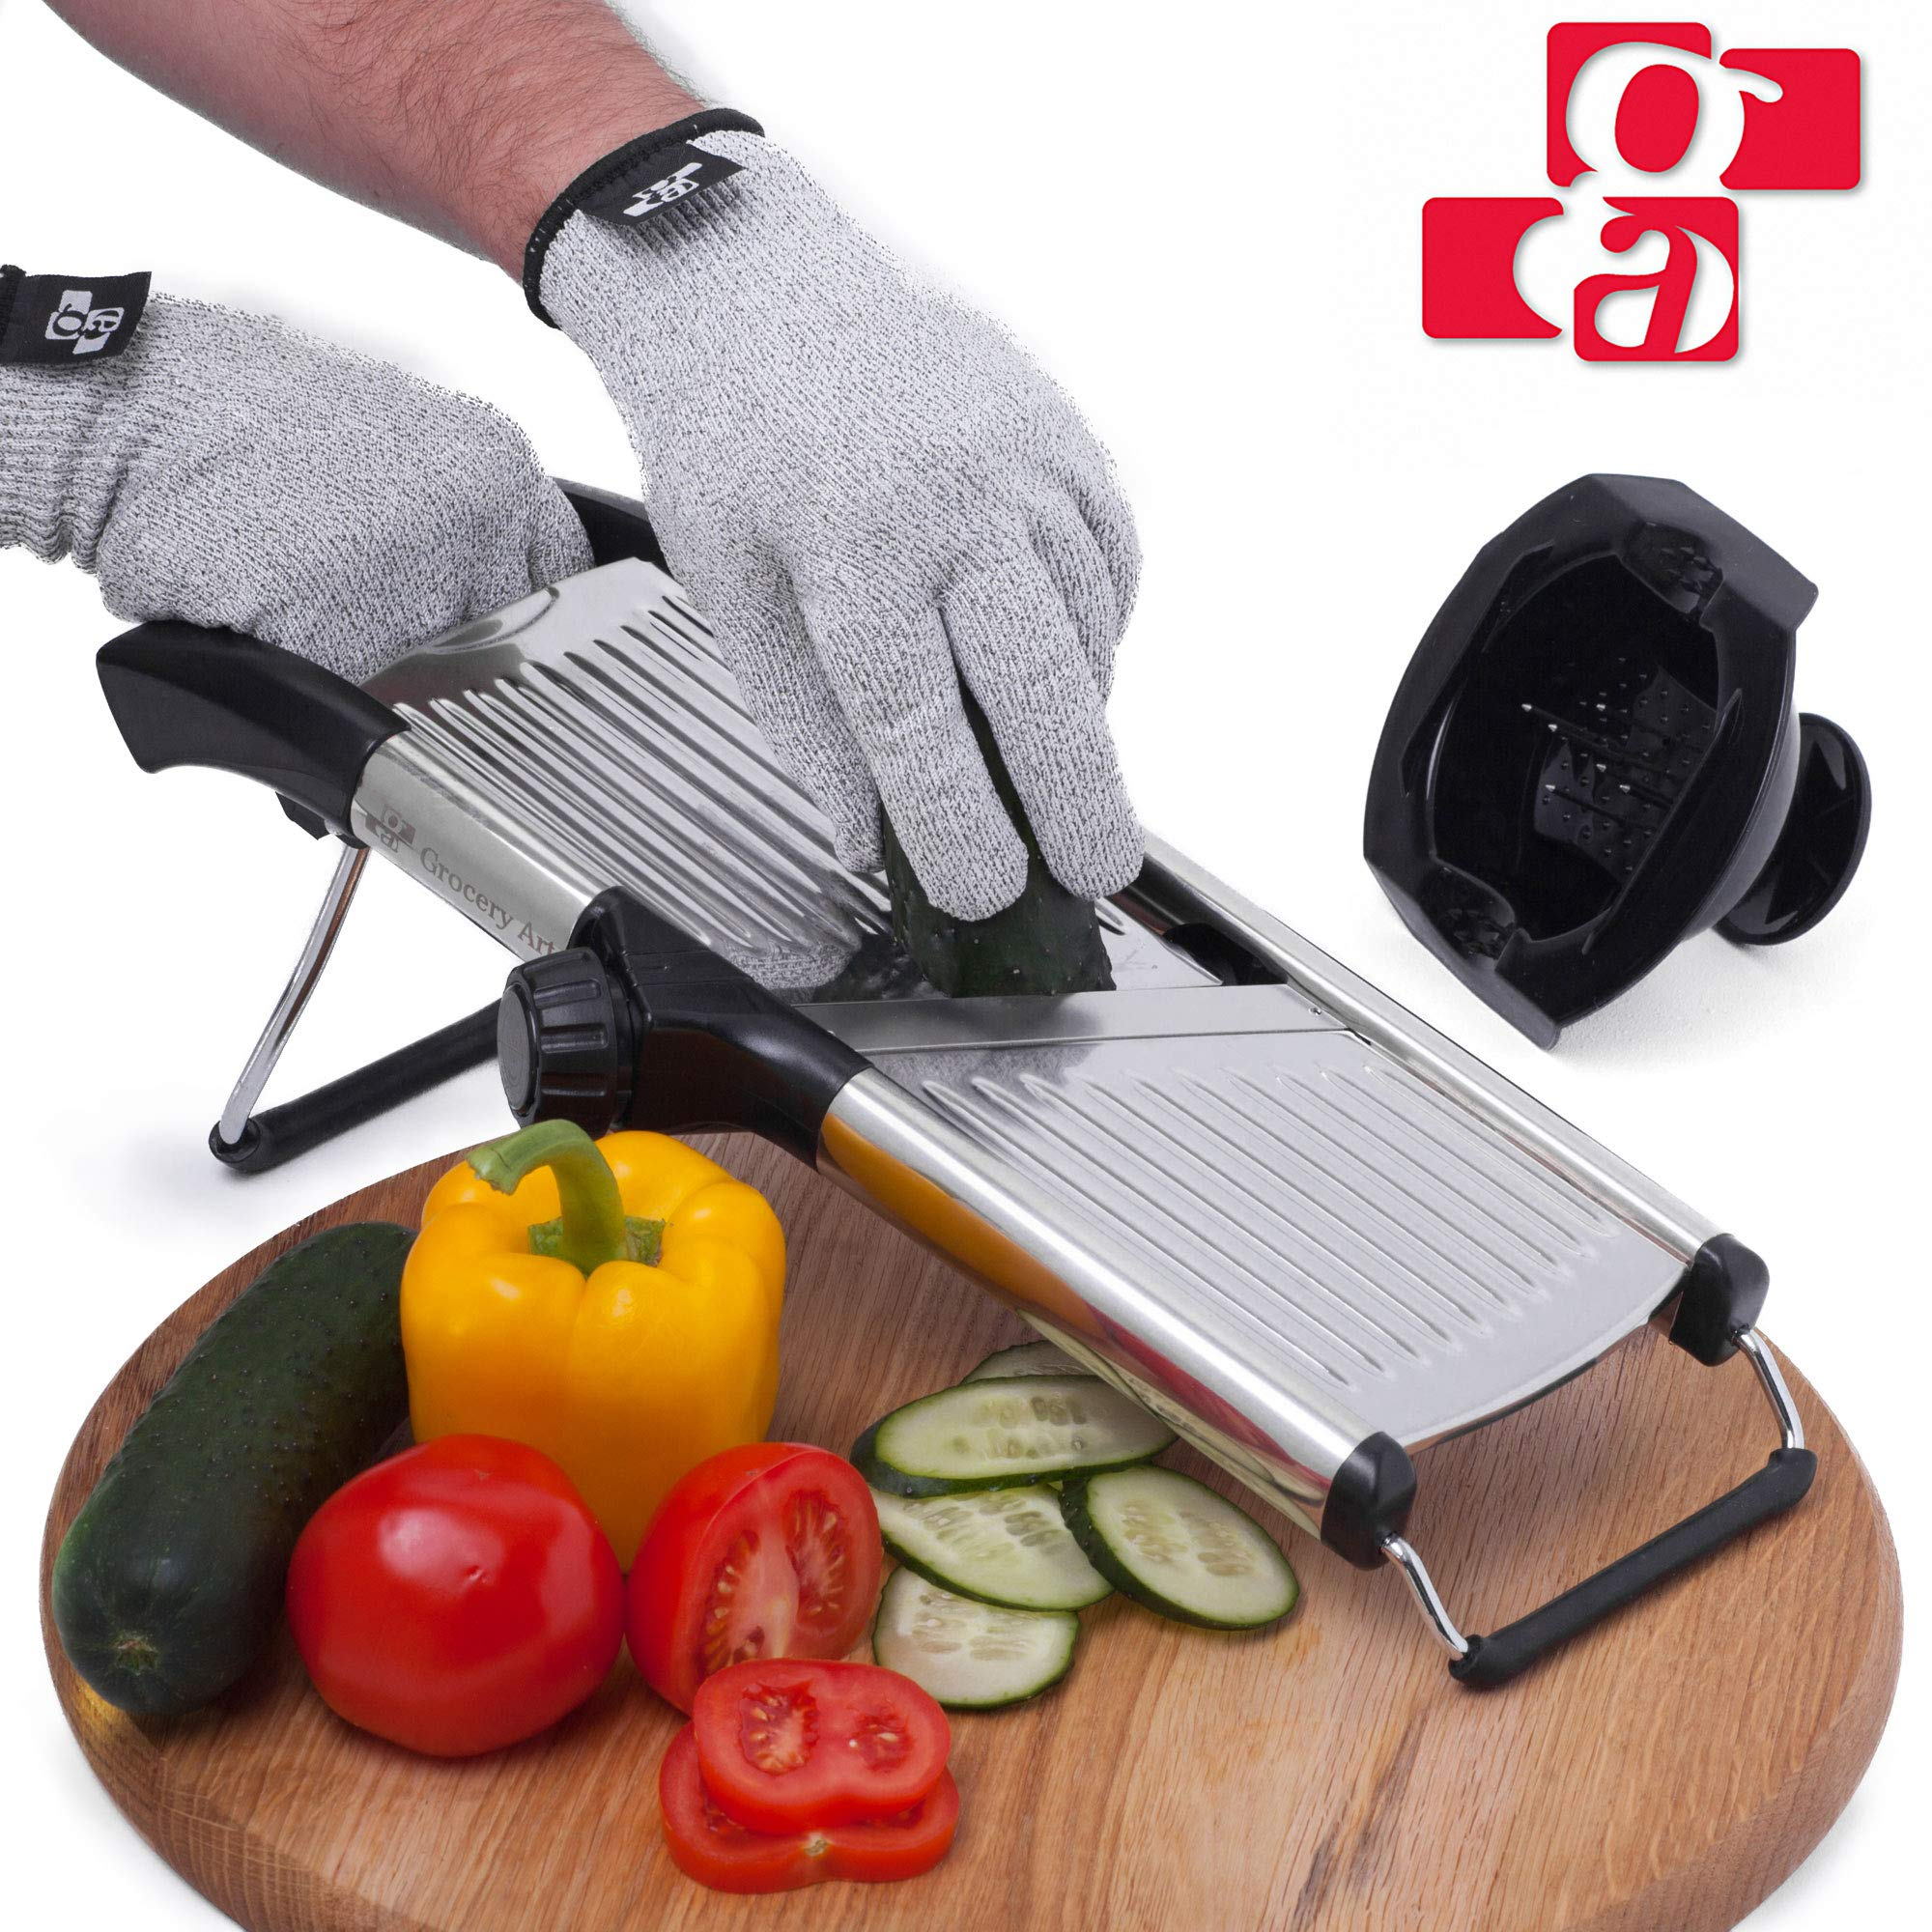 GA Mandoline Slicer - Adjustable Mandolin Vegetable Slicer and French Fry Cutter, Food Slicer, Vegetable Julienne - Thick Sharp Stainless Steel Blades - Cut-Resistant Gloves and Food Holder by Grocery Art